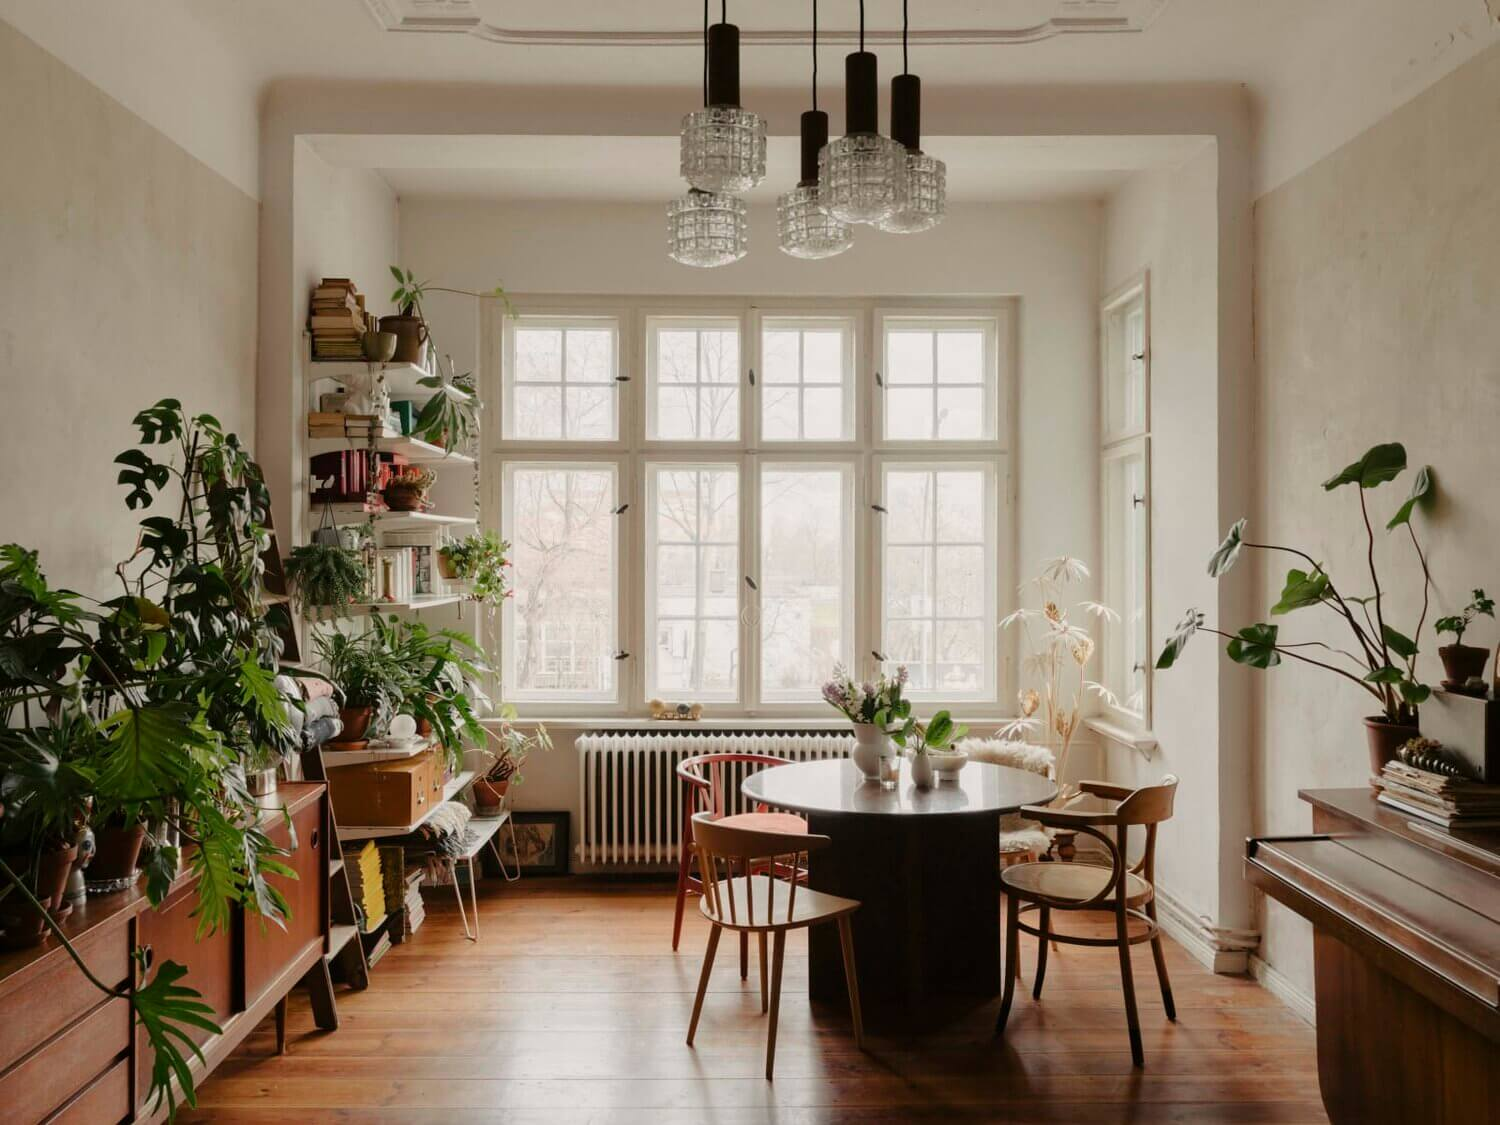 A Plant-Filled Vintage Apartment in Berlin